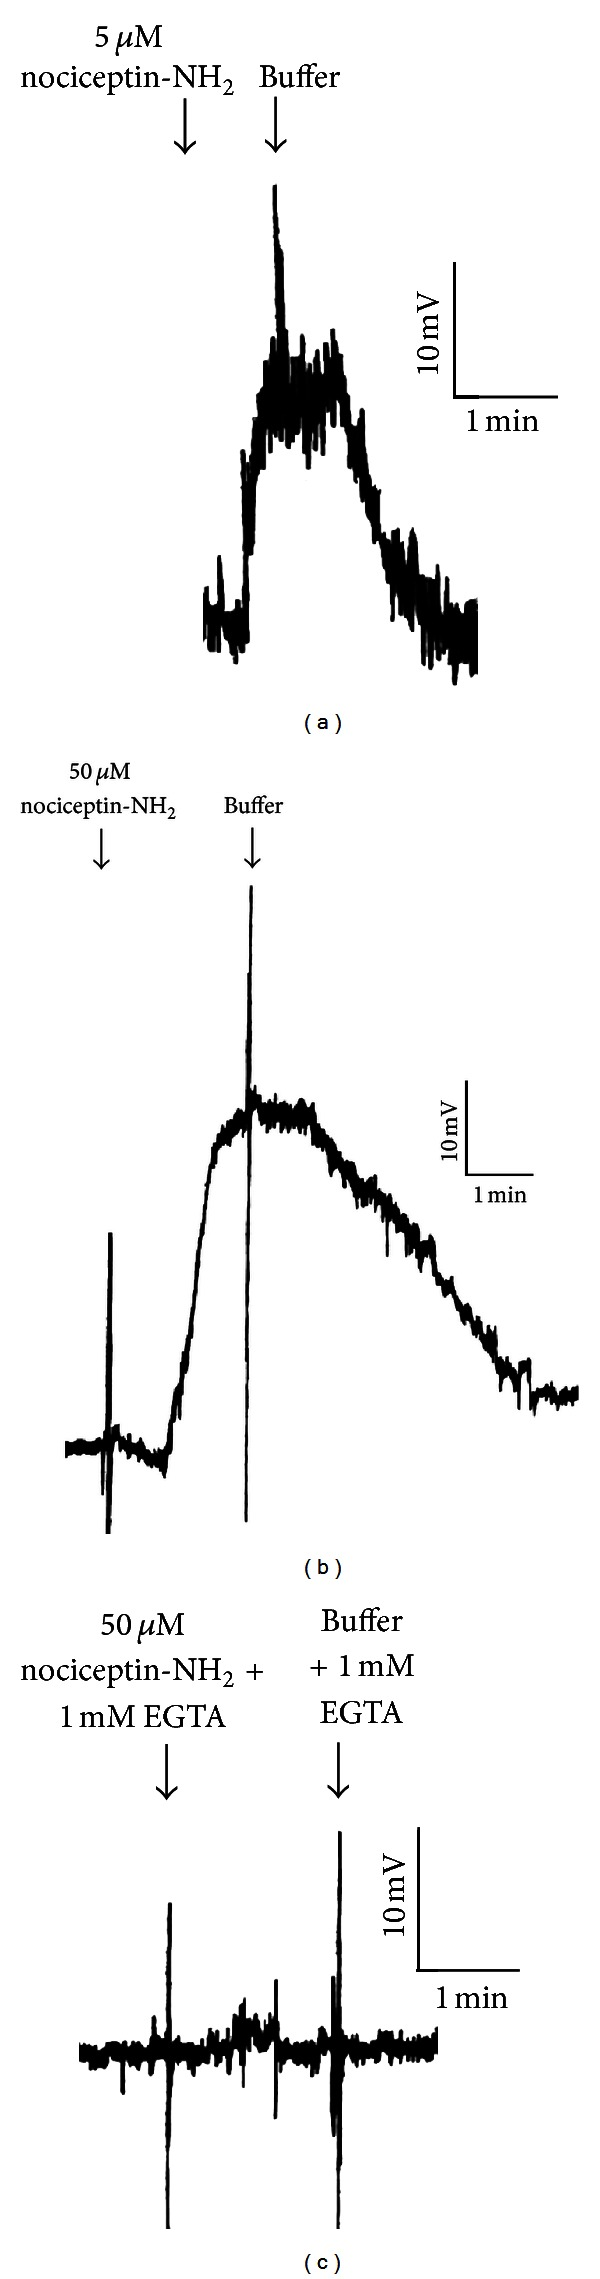 Nociceptin-NH2 is a depolarizing signal in Tetrahymena thermophila . (a) 5 μ M nociceptin-NH2 causes a depolarization of approximately 20 mV, though this concentration does not often provoke a behavioral response in Tetrahymena. (b) 50 μ M nociceptin-NH2 causes a depolarization of approximately 40 mV. This concentration is the EC 100 for behavioral avoidance in Tetrahymena. (c) The depolarization produced by 50 μ M nociceptin-NH2 is eliminated by the addition of 1 mM EGTA to the external medium, implying that calcium is involved in the depolarization.